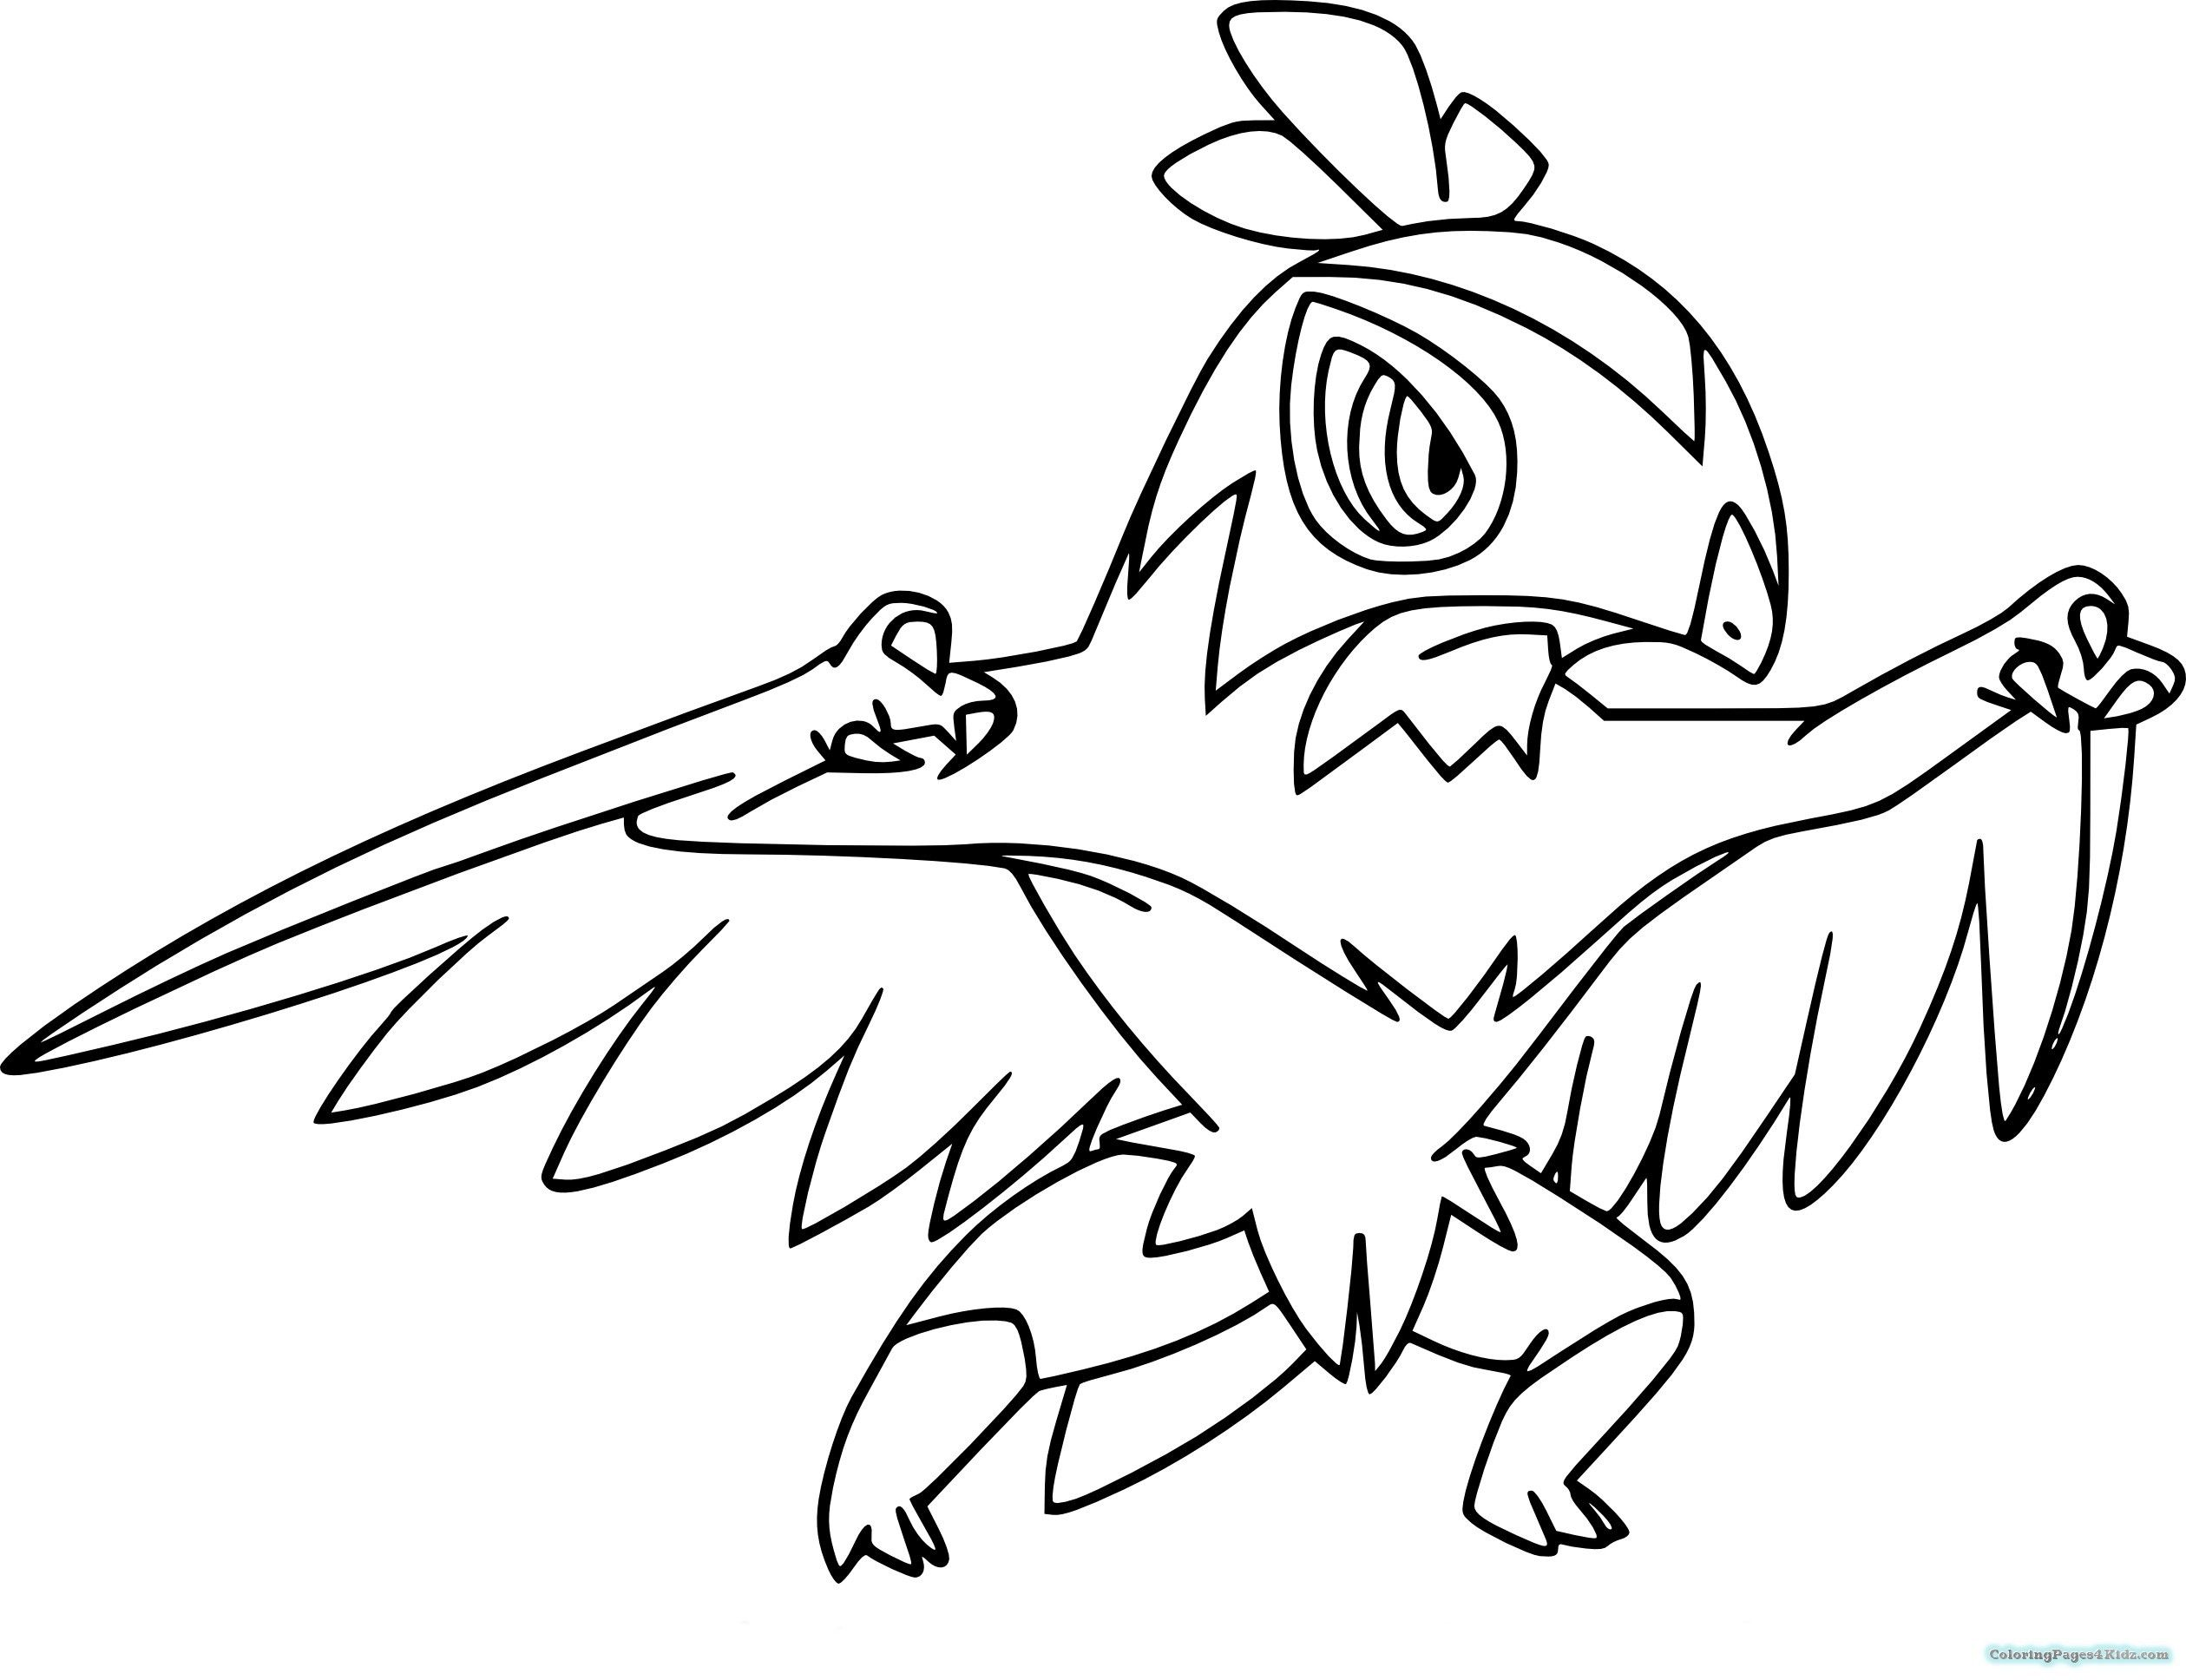 Pokemon Coloring Pages Gen 1 Through The Thousands Of Photos On The Net With Regards To Pokemo Pokemon Coloring Pages Cartoon Coloring Pages Pokemon Coloring